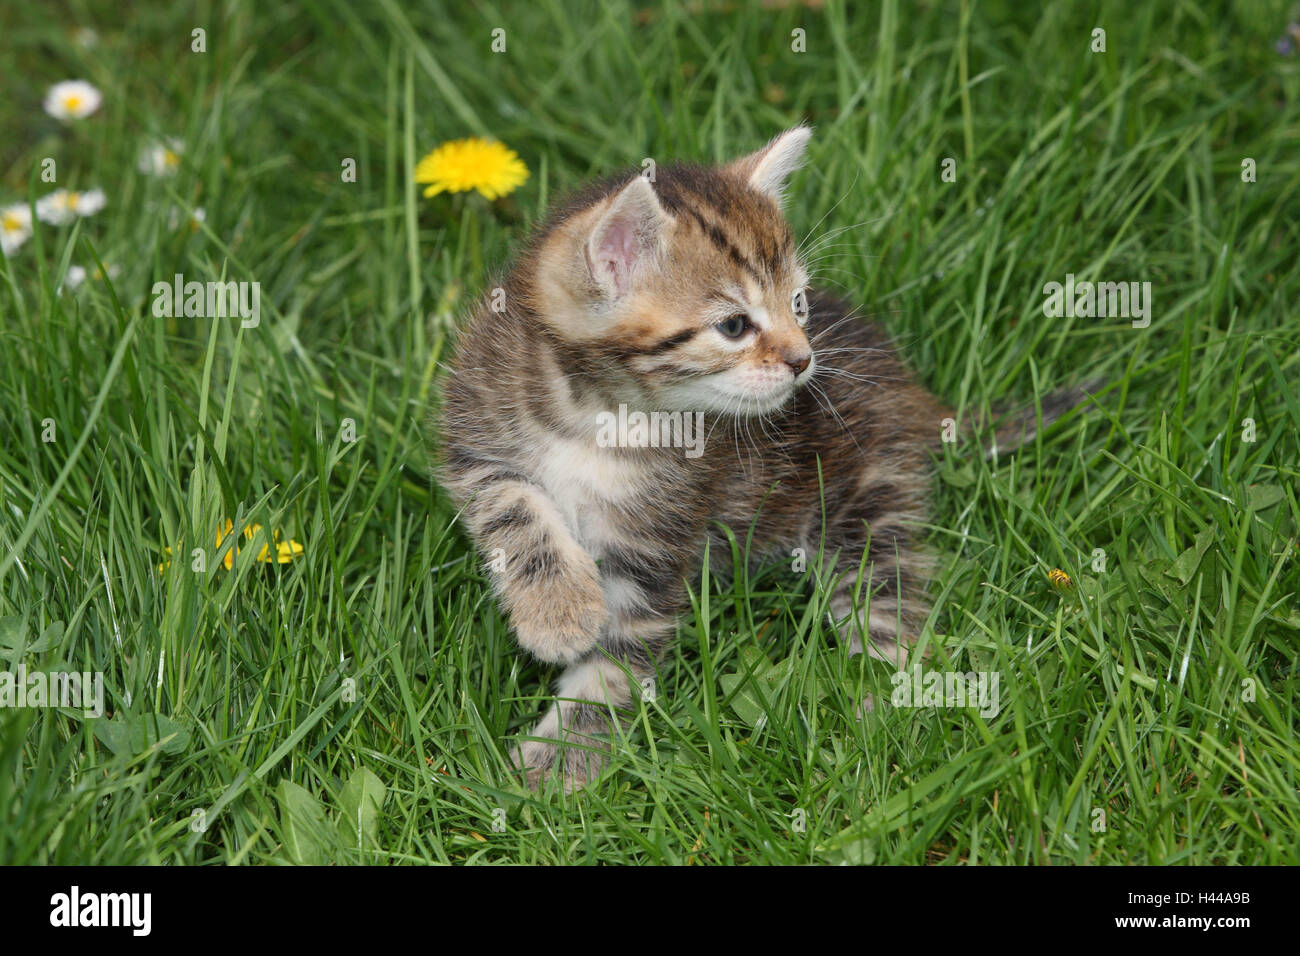 Cat, young, run, meadow, garden, animals, mammals, pets, small cats, Felidae, domesticates, house cat, young animal, - Stock Image